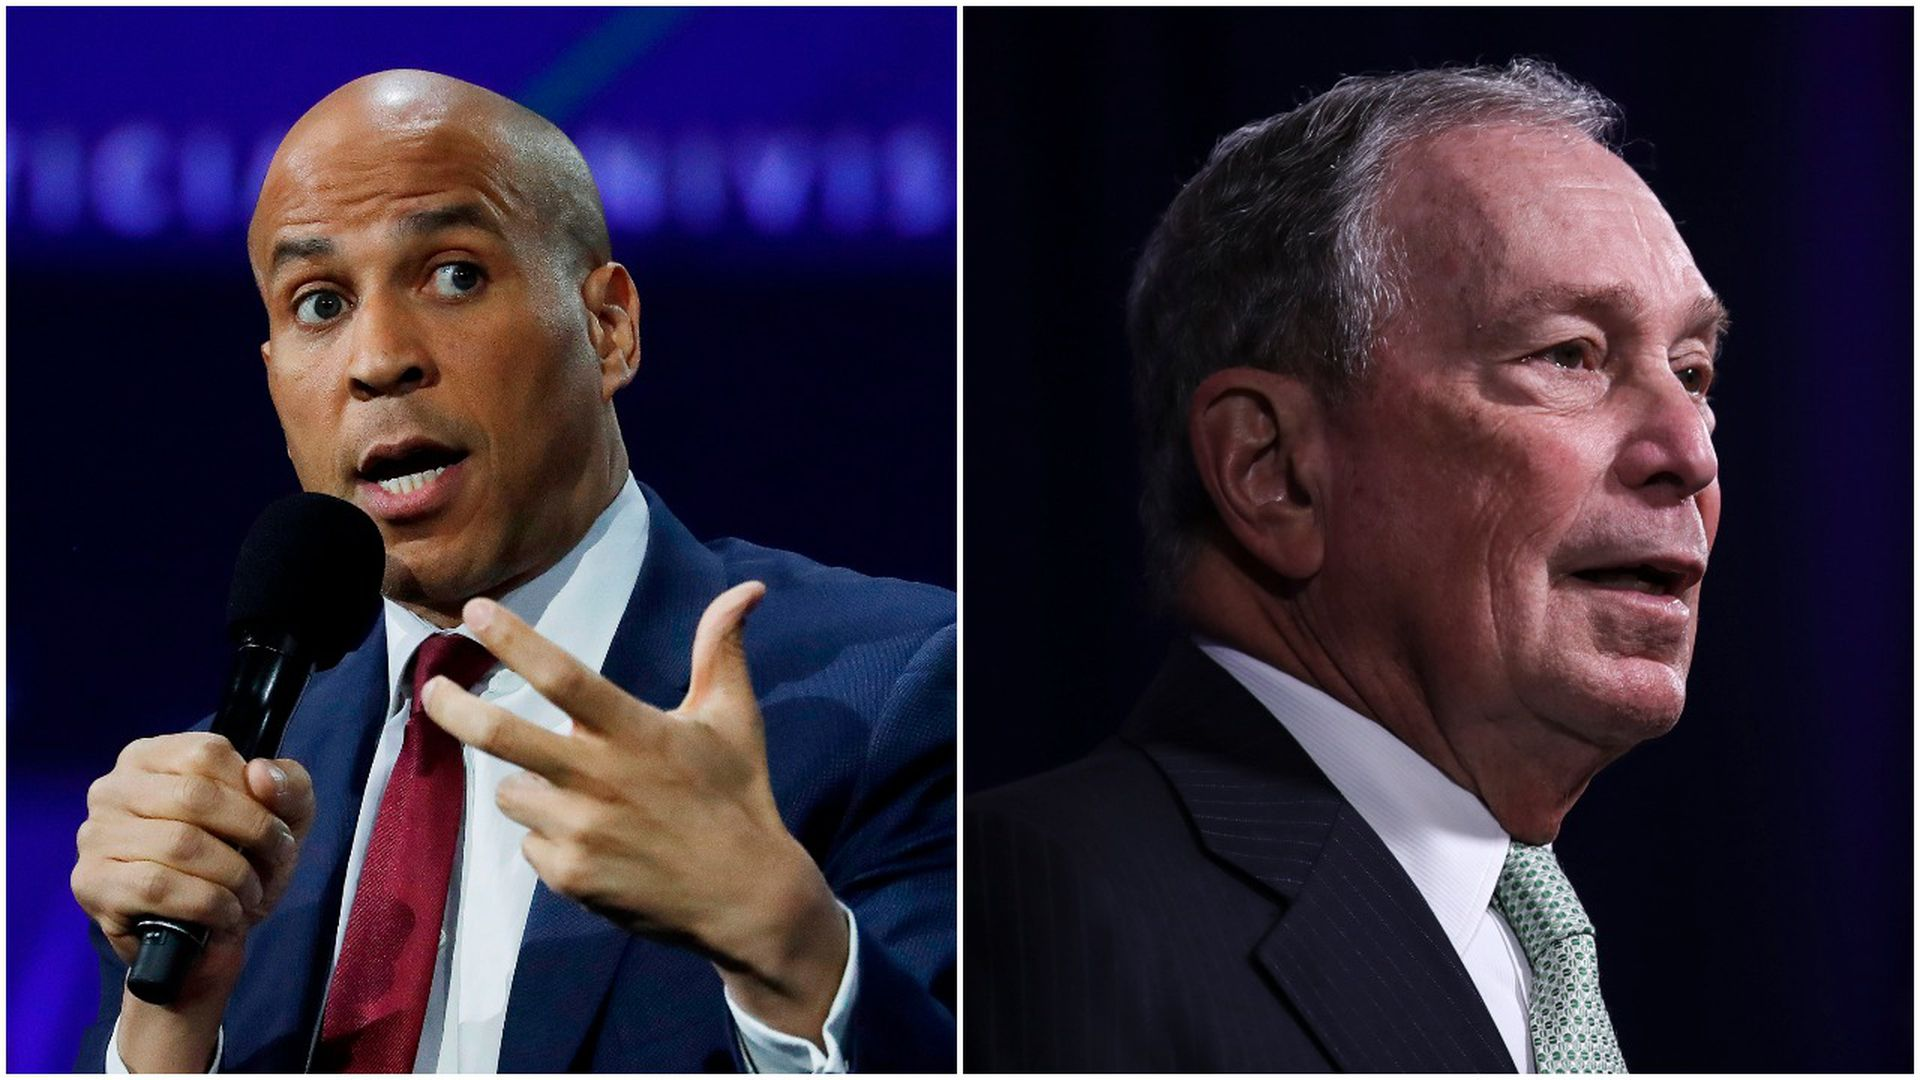 This image is a split screen between Cory Booker and Michael Bloomberg.